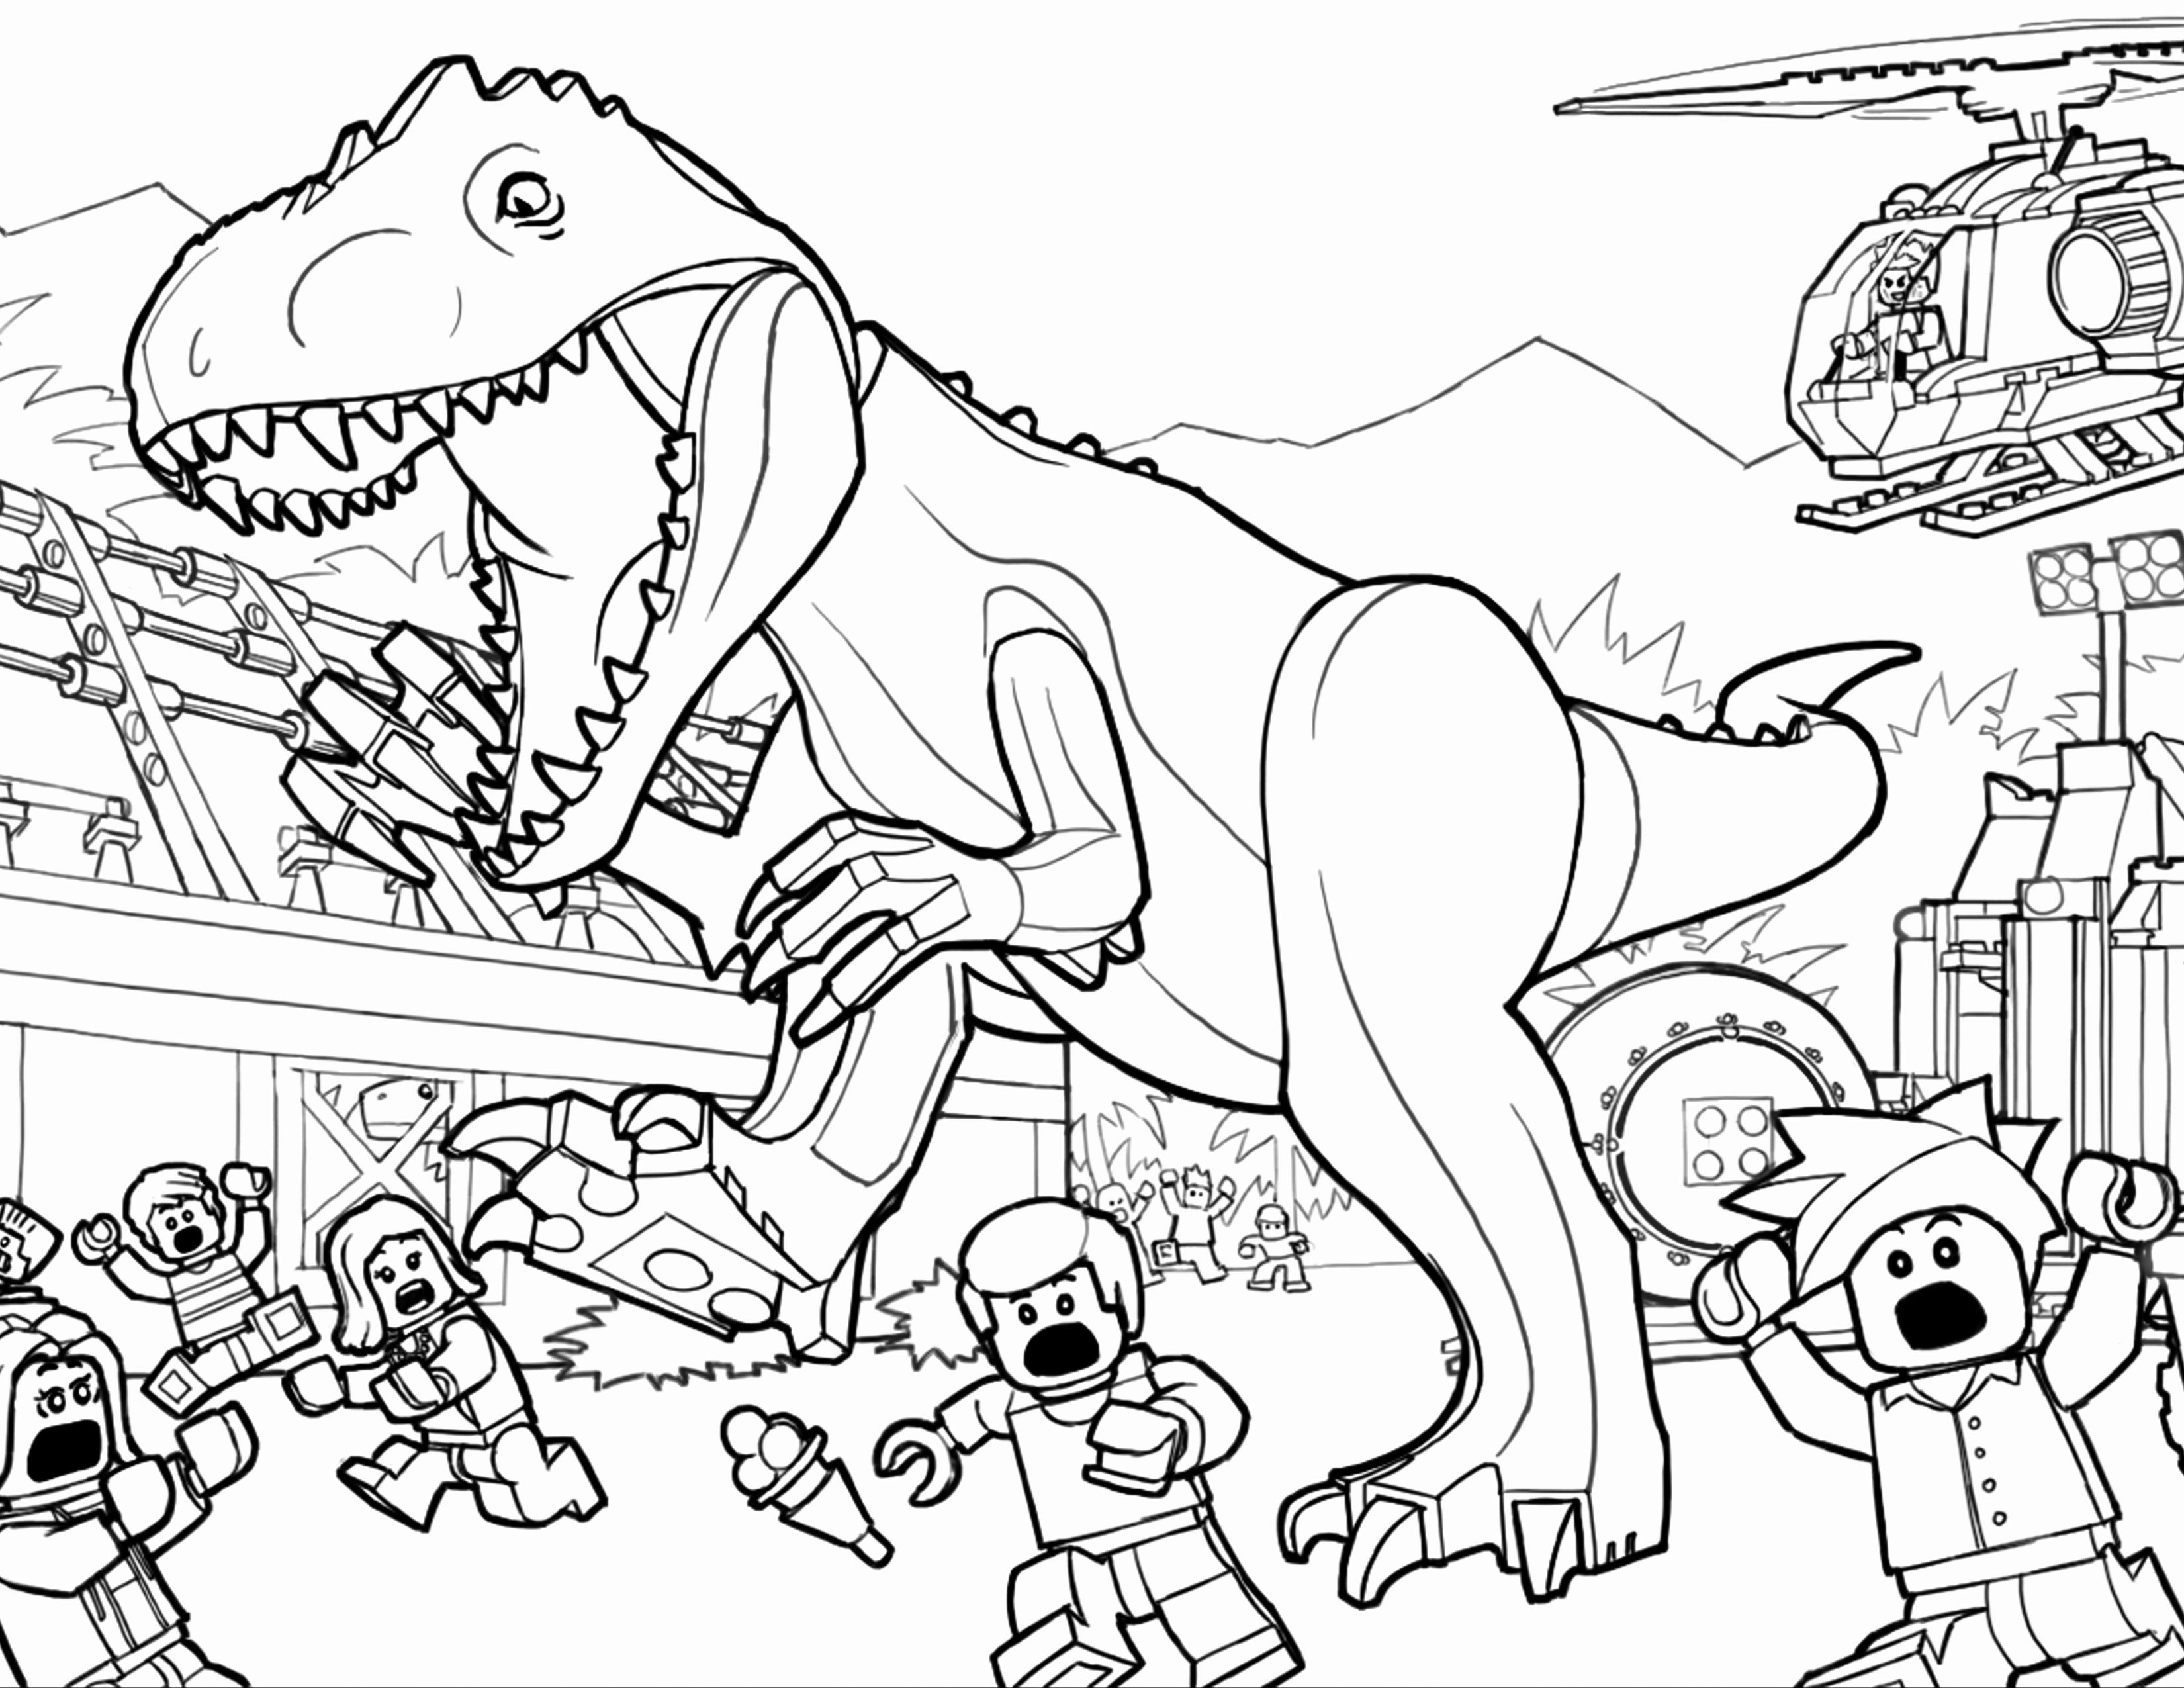 T Rex Coloring Page Lovely Trex Coloring Pages Best Coloring Pages For Kids In 2020 Dinosaur Coloring Pages Lego Coloring Pages Dinosaur Coloring